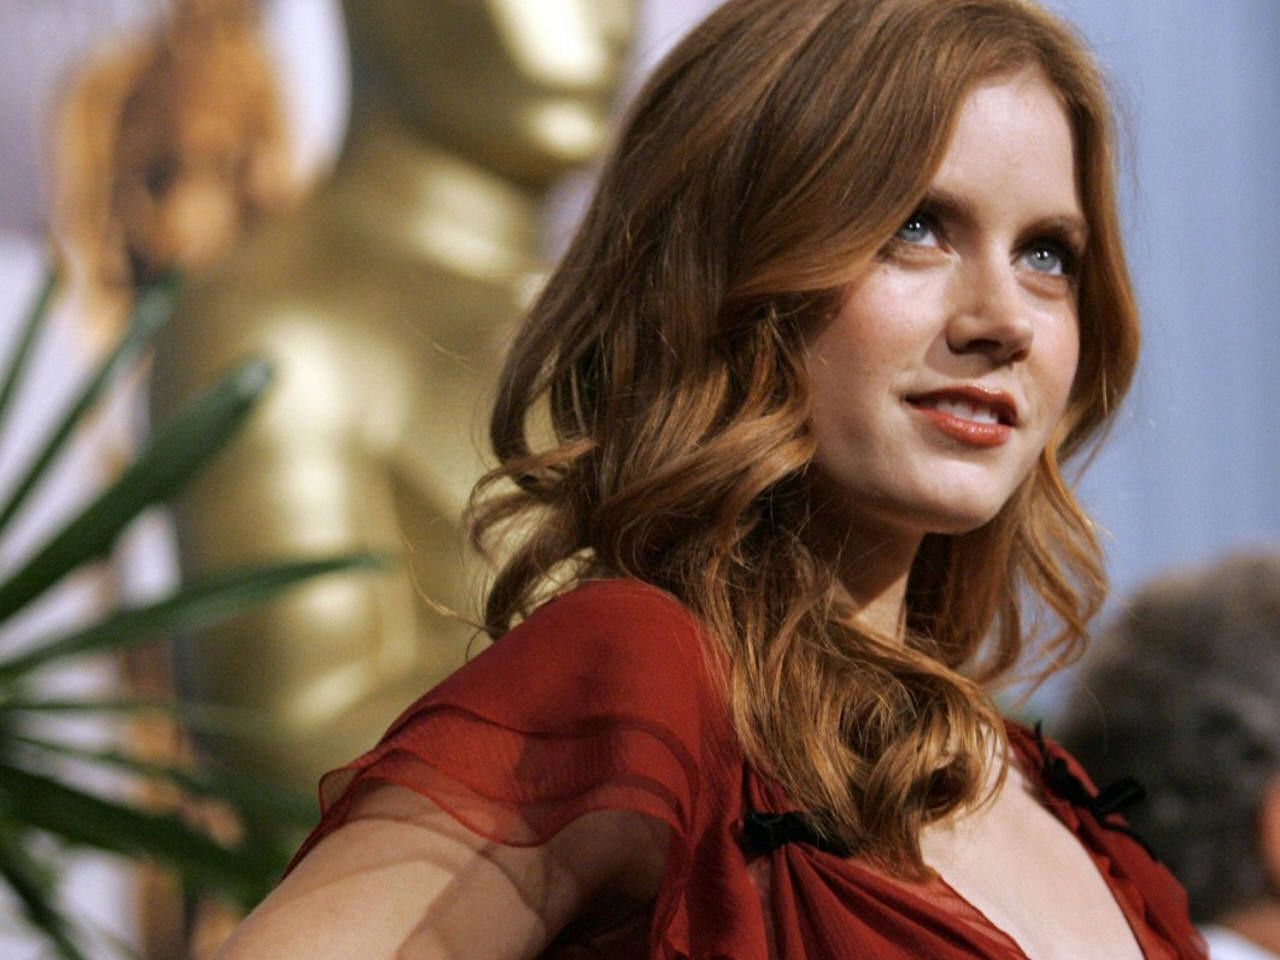 Lovely Amy Adams Beautiful Side Look Still Background Desktop Hd Mobile Free Pictures